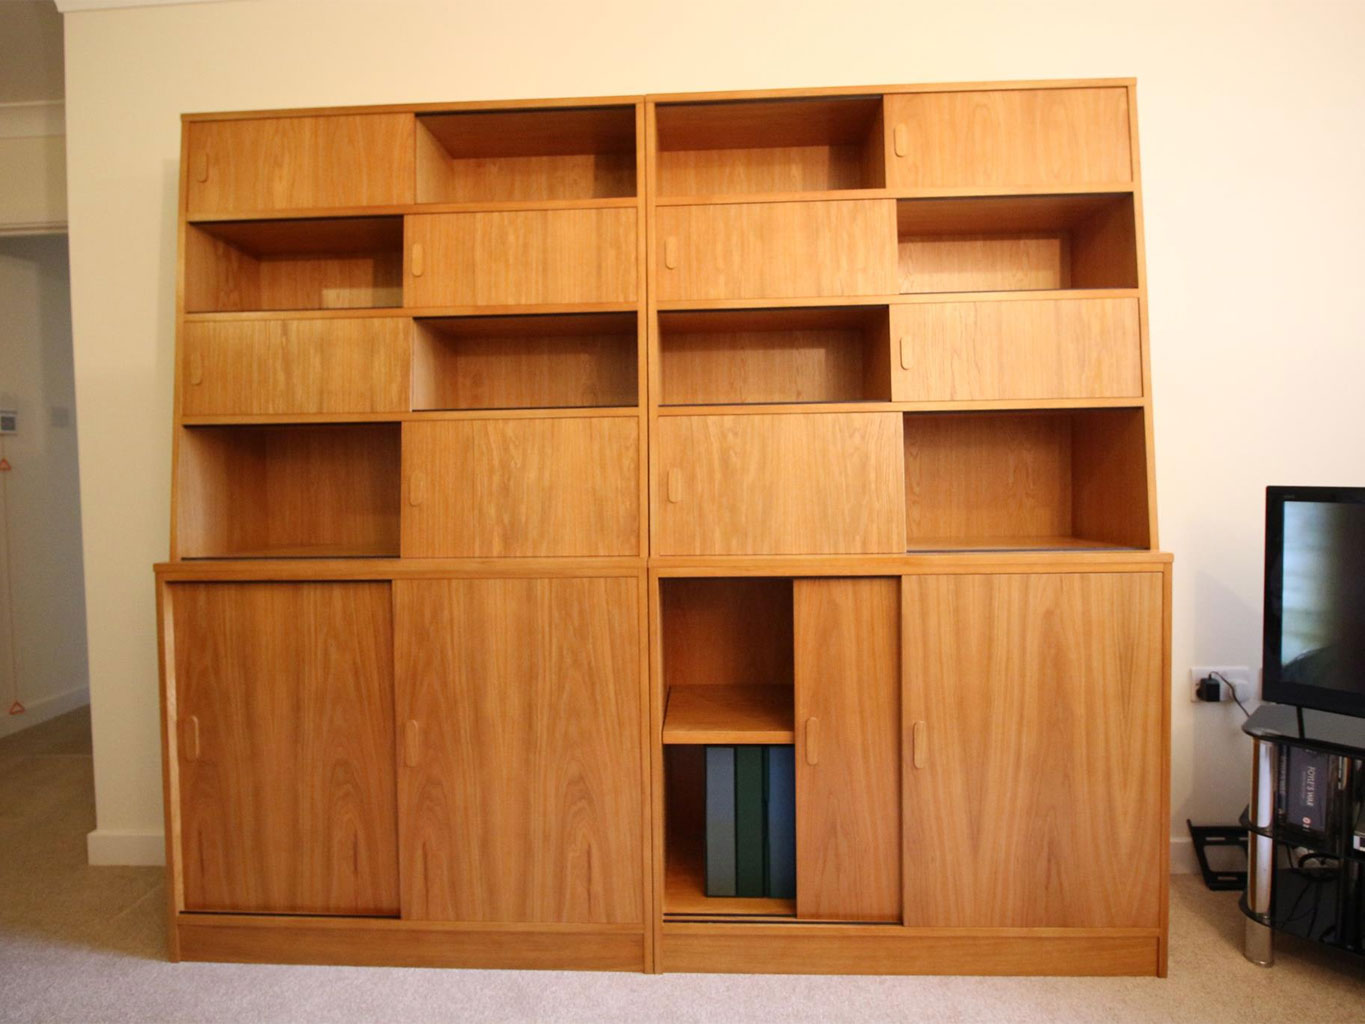 Typical English Decorations Hand Made English Bookcases And